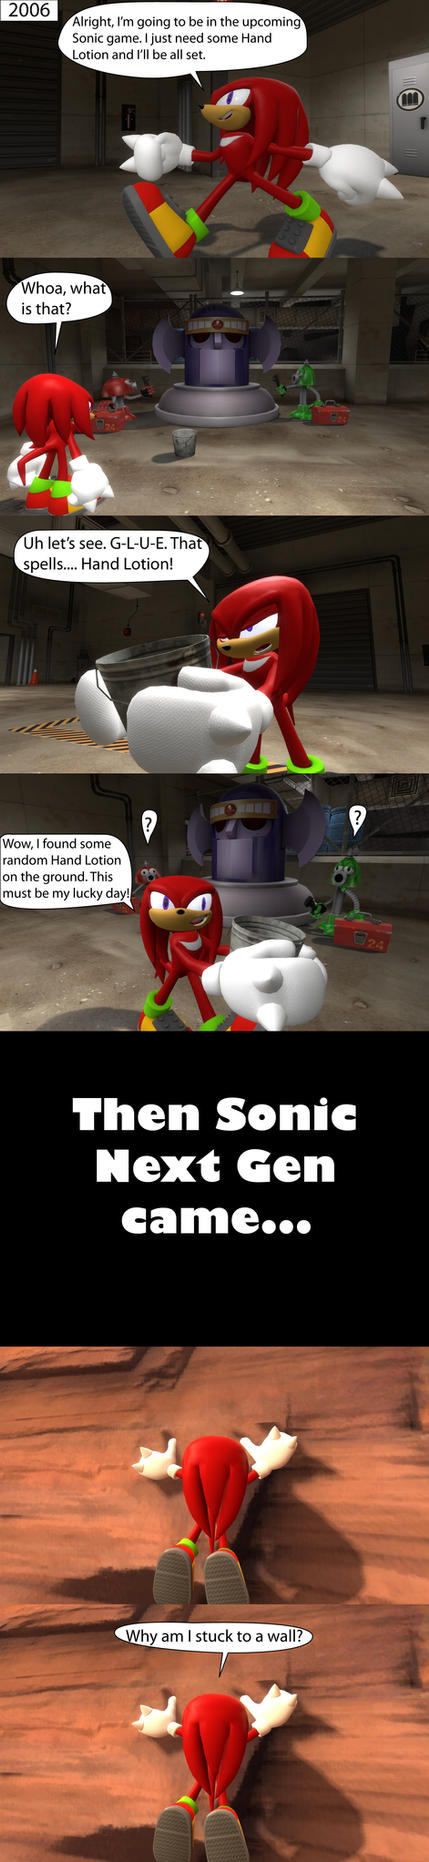 Knuckles the Idiot 5 by MeltingMan234